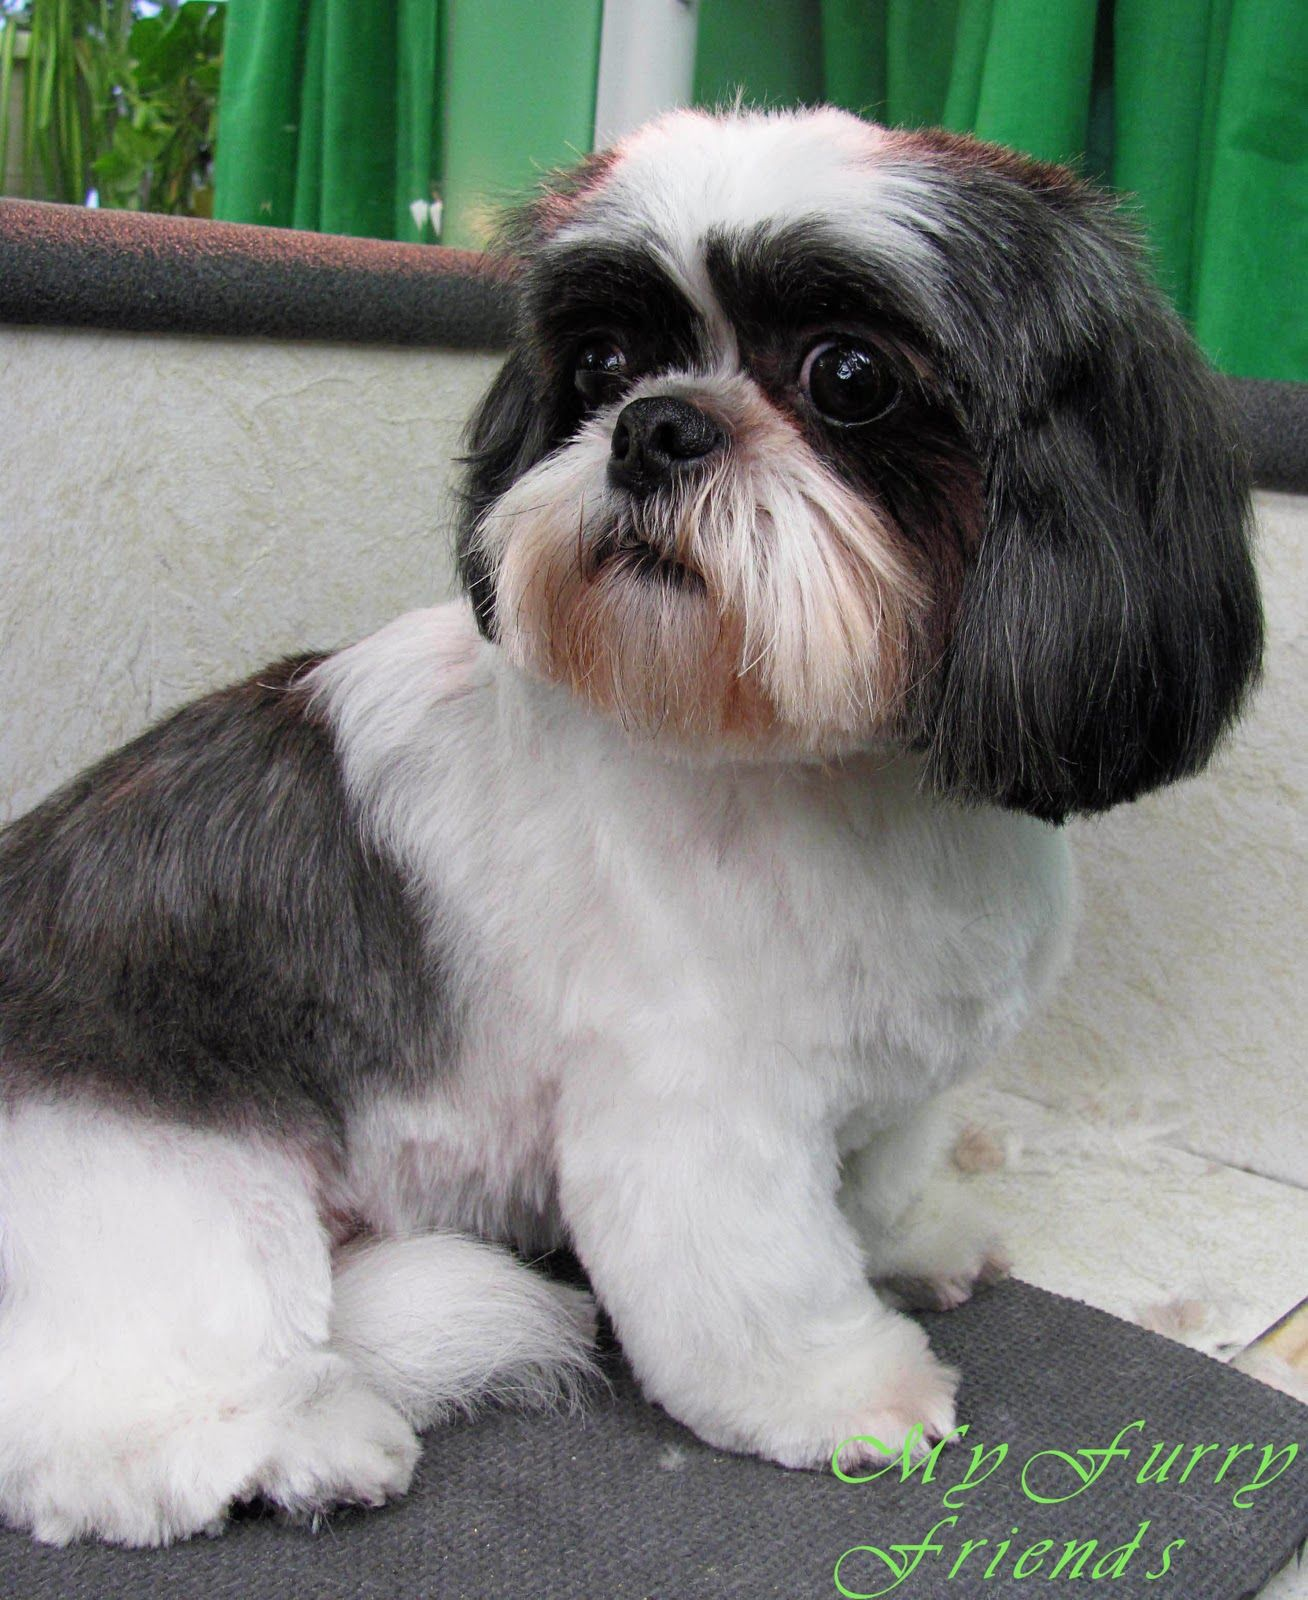 shih tzu hair styles for male shih tzu haircuts grooming the the bad amp the 4793 | 82fdf781d160dcccbbdfc50b3dc7bade